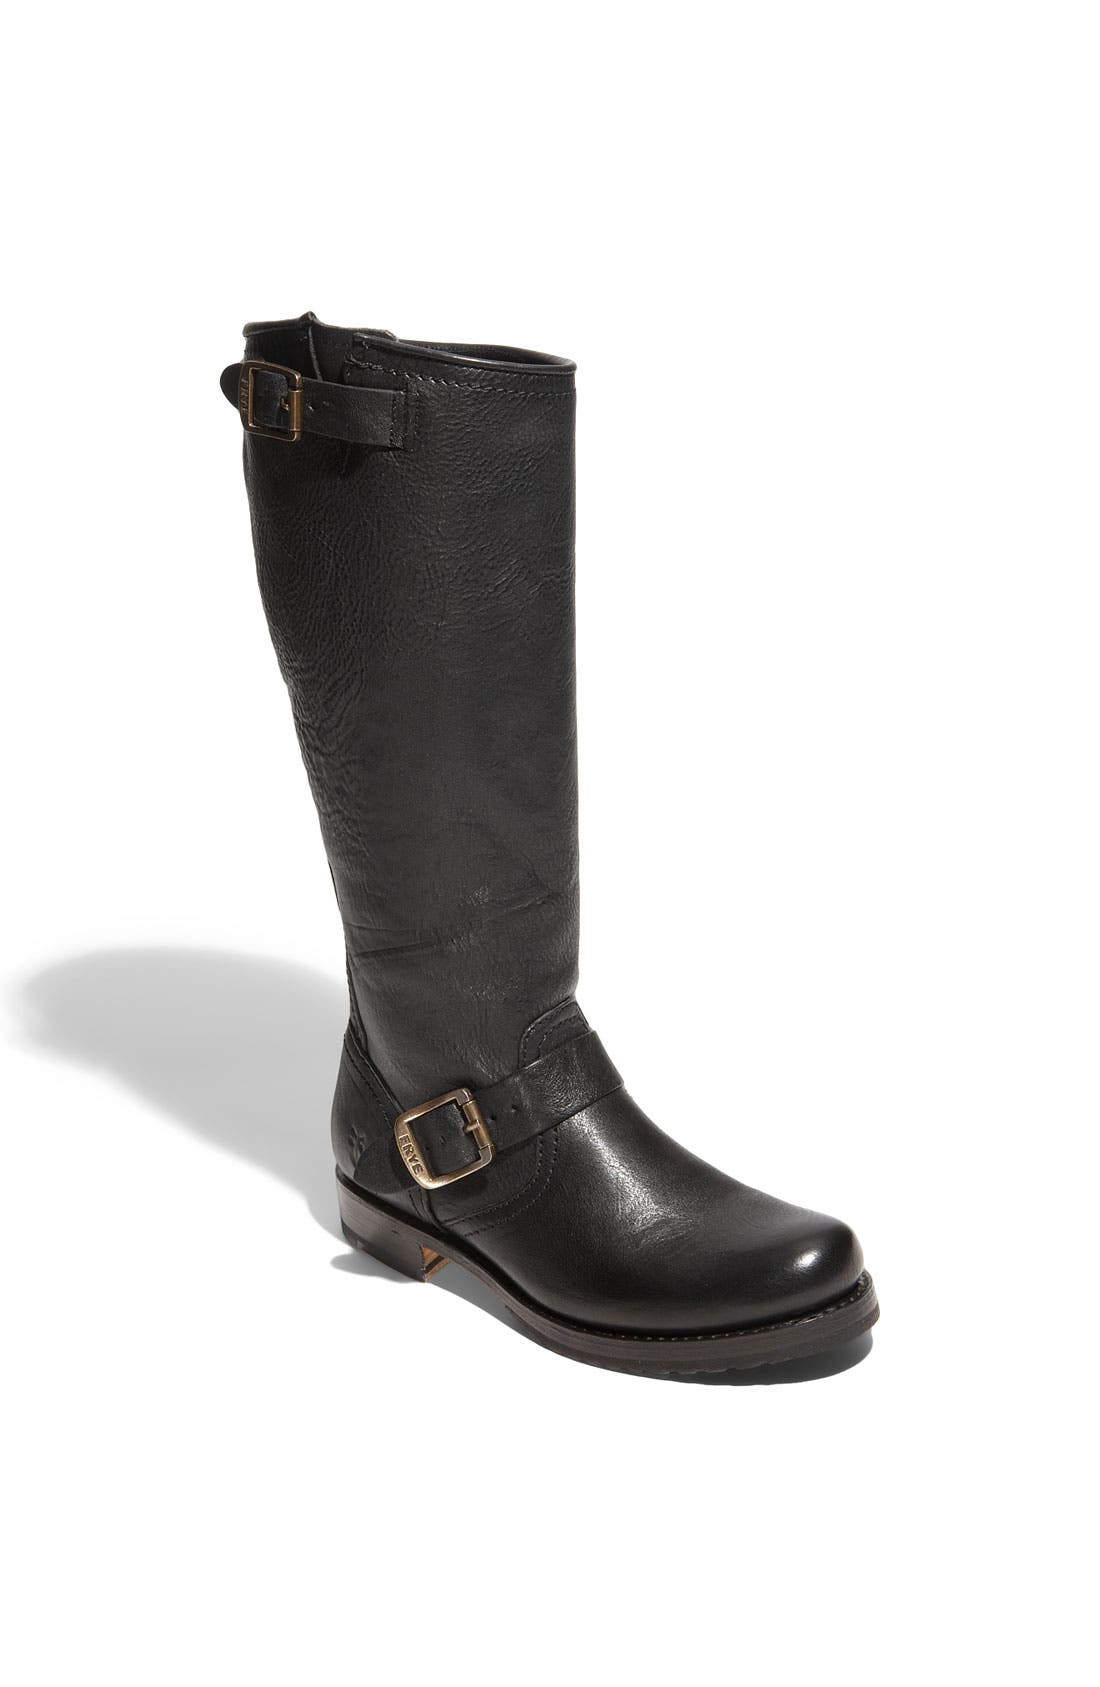 Alternate Image 1 Selected - Frye 'Veronica Slouch' Boot (Women)